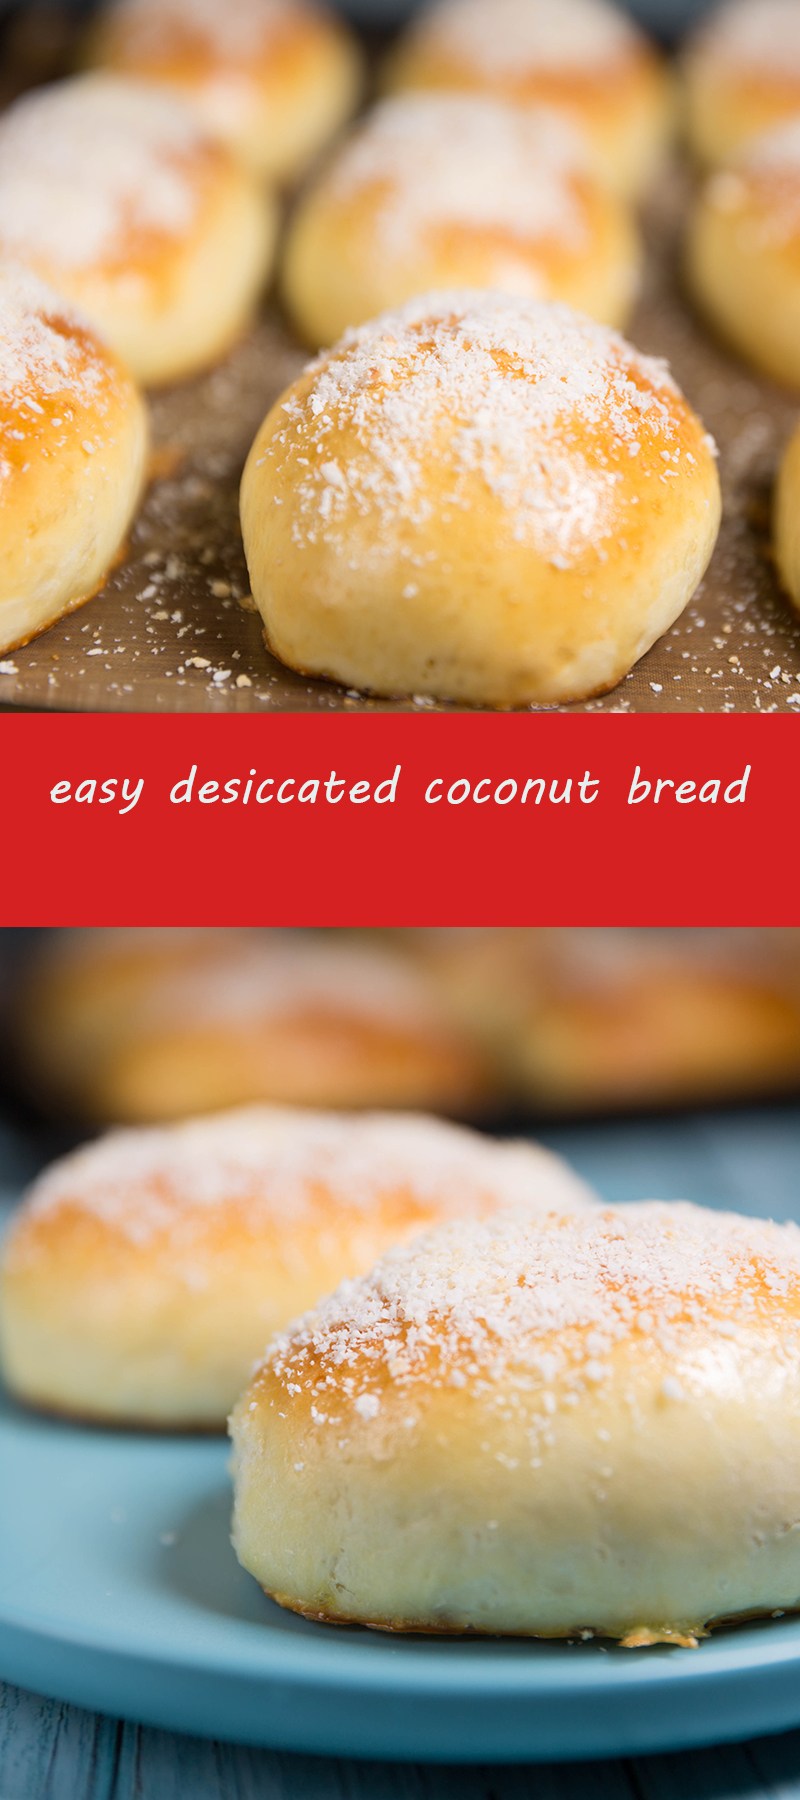 easy desiccated coconut bread